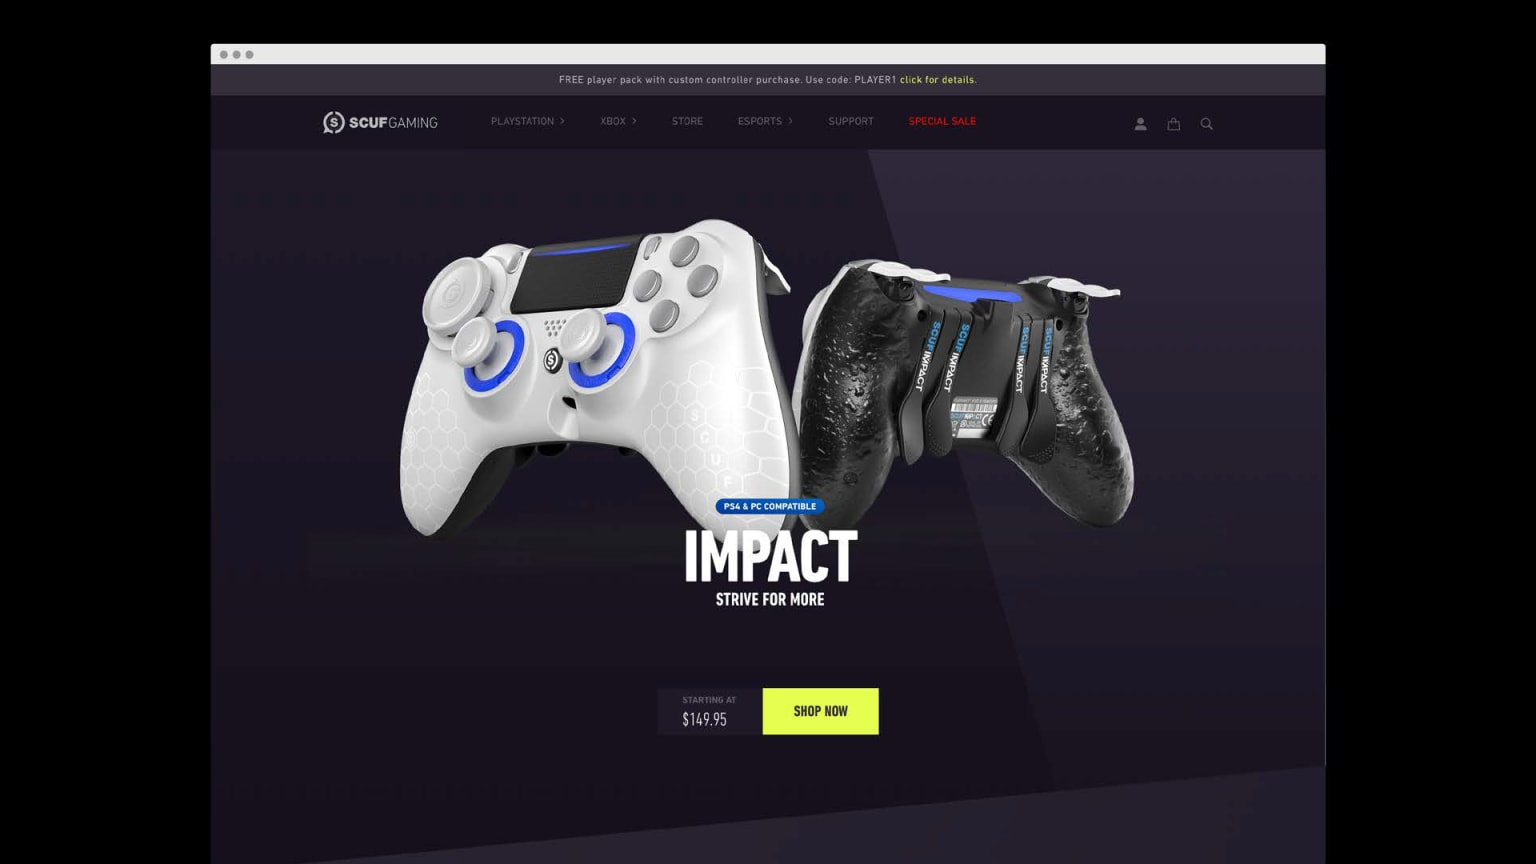 SCUF Gaming